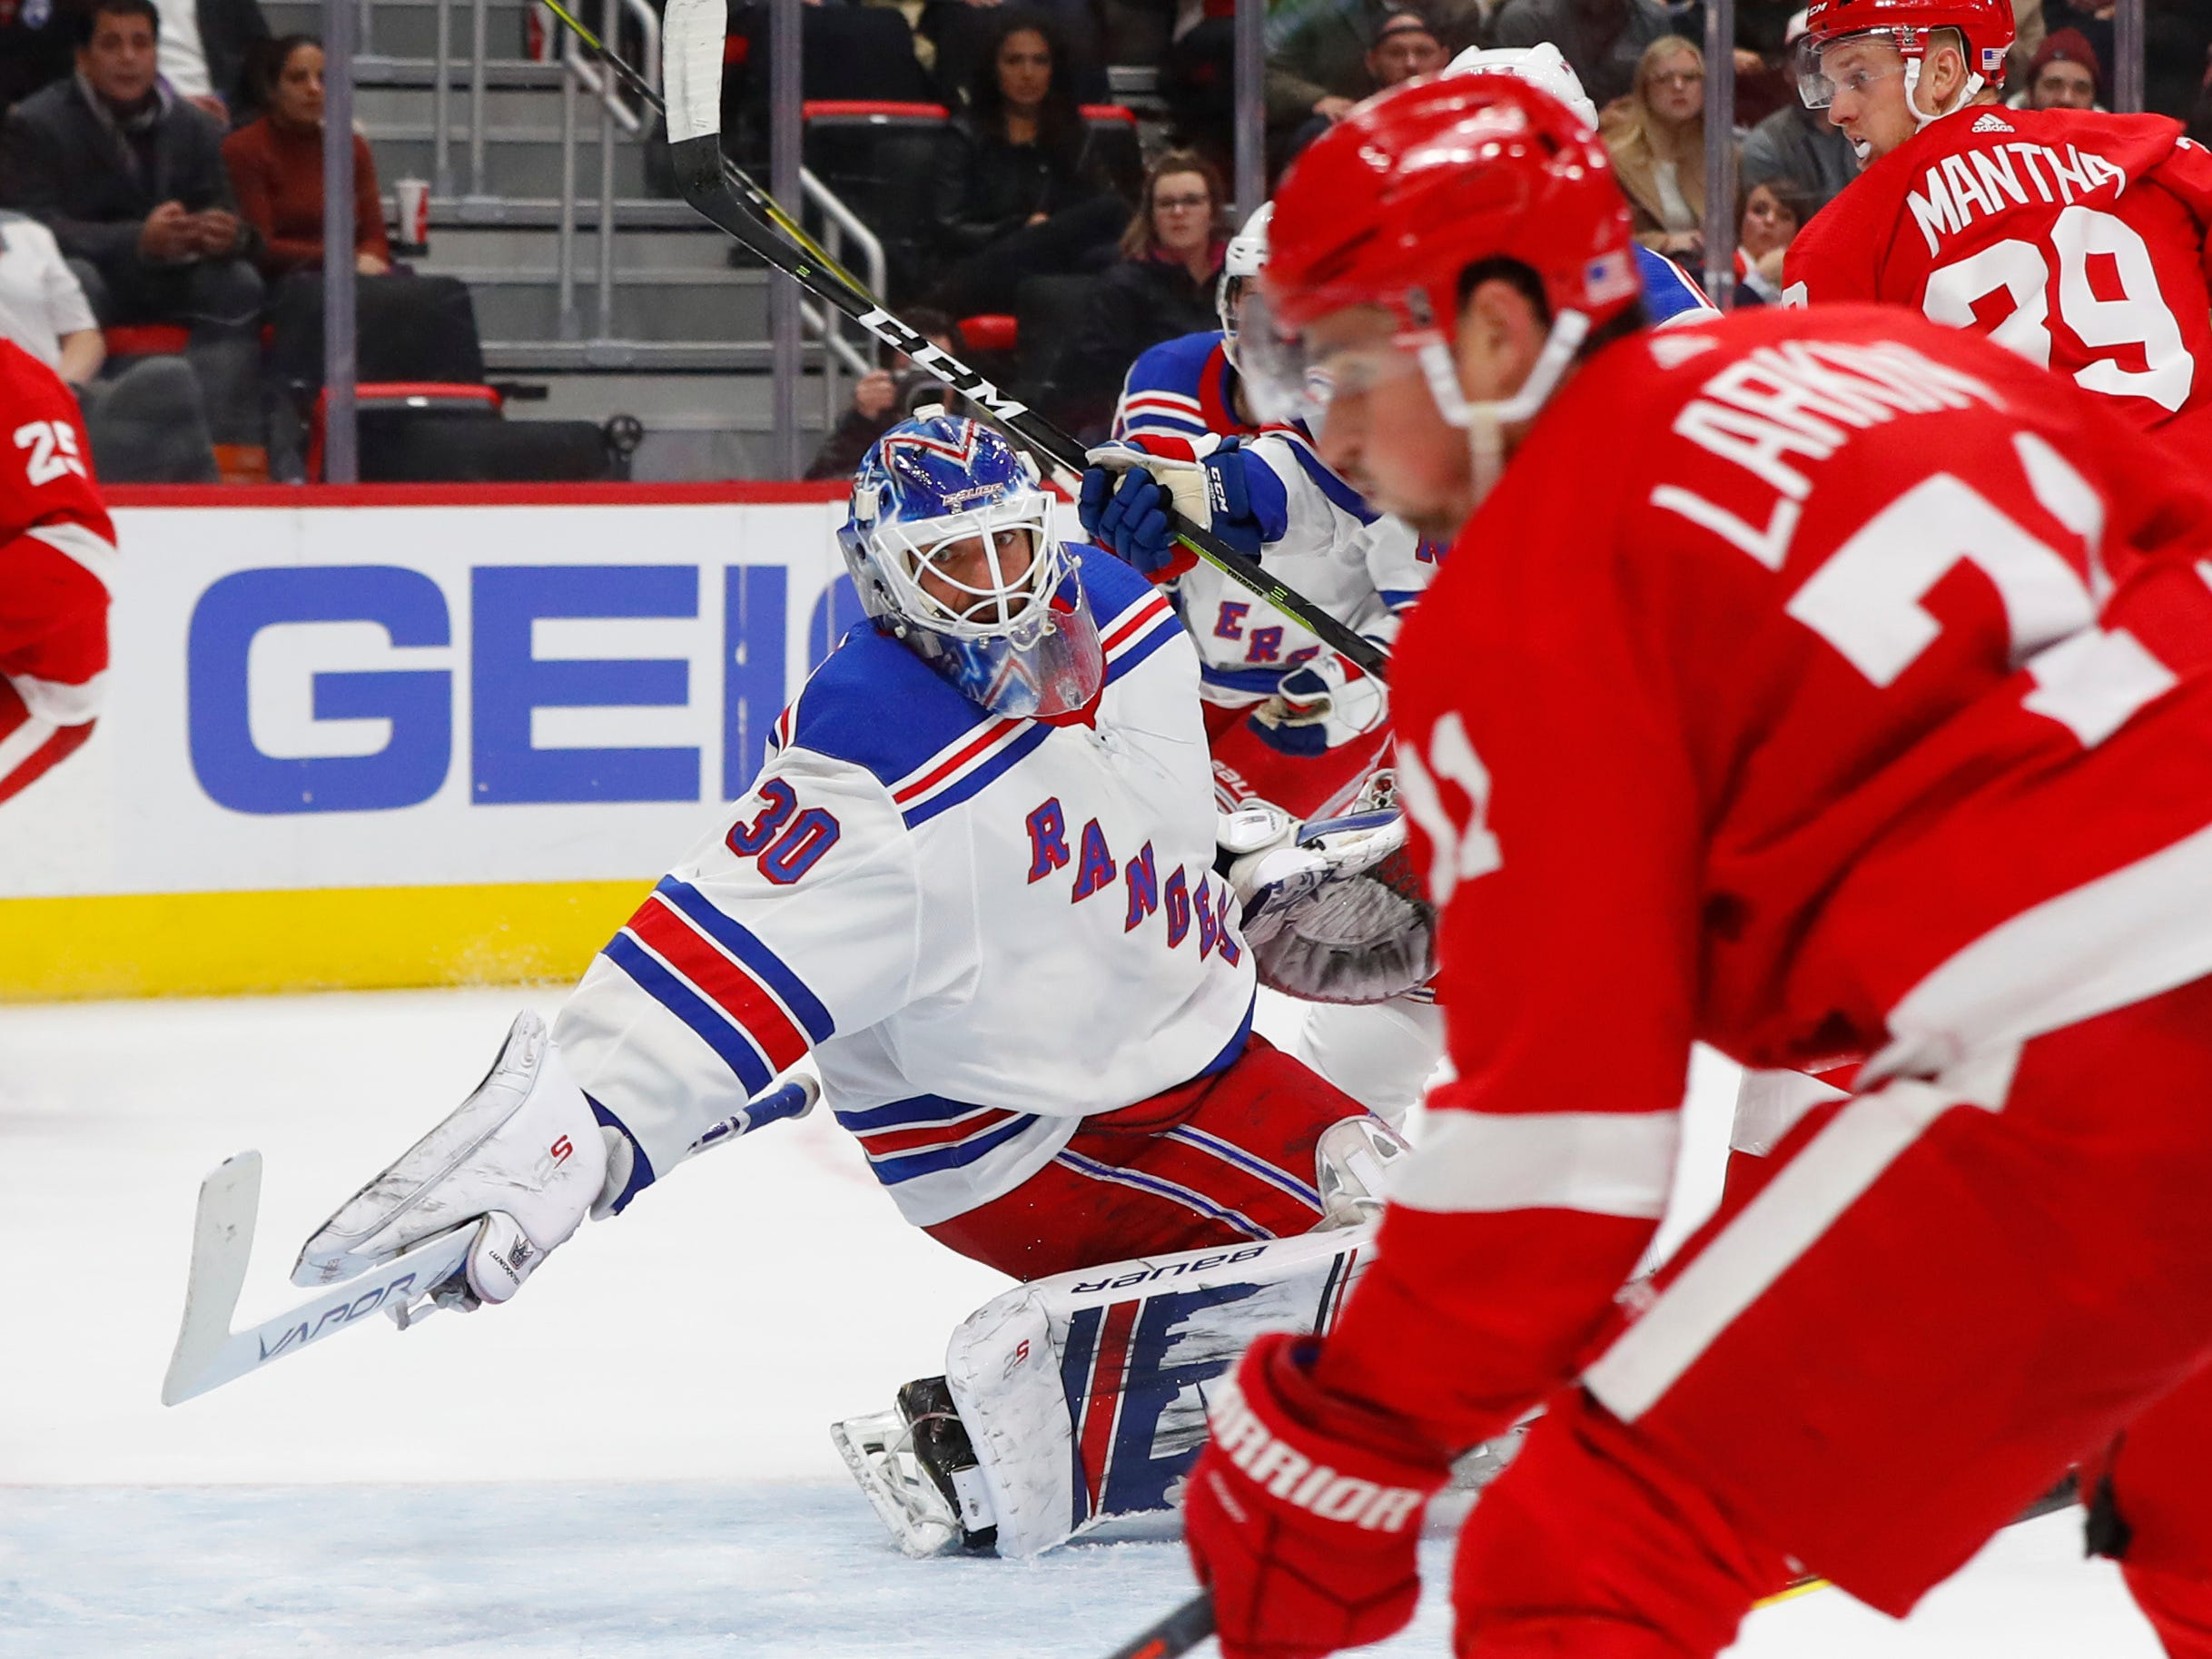 New York Rangers goalie Henrik Lundqvist (30) reaches to block a shot by Detroit Red Wings' Dylan Larkin in the second period of an NHL hockey game in Detroit, Friday, Nov. 9, 2018.